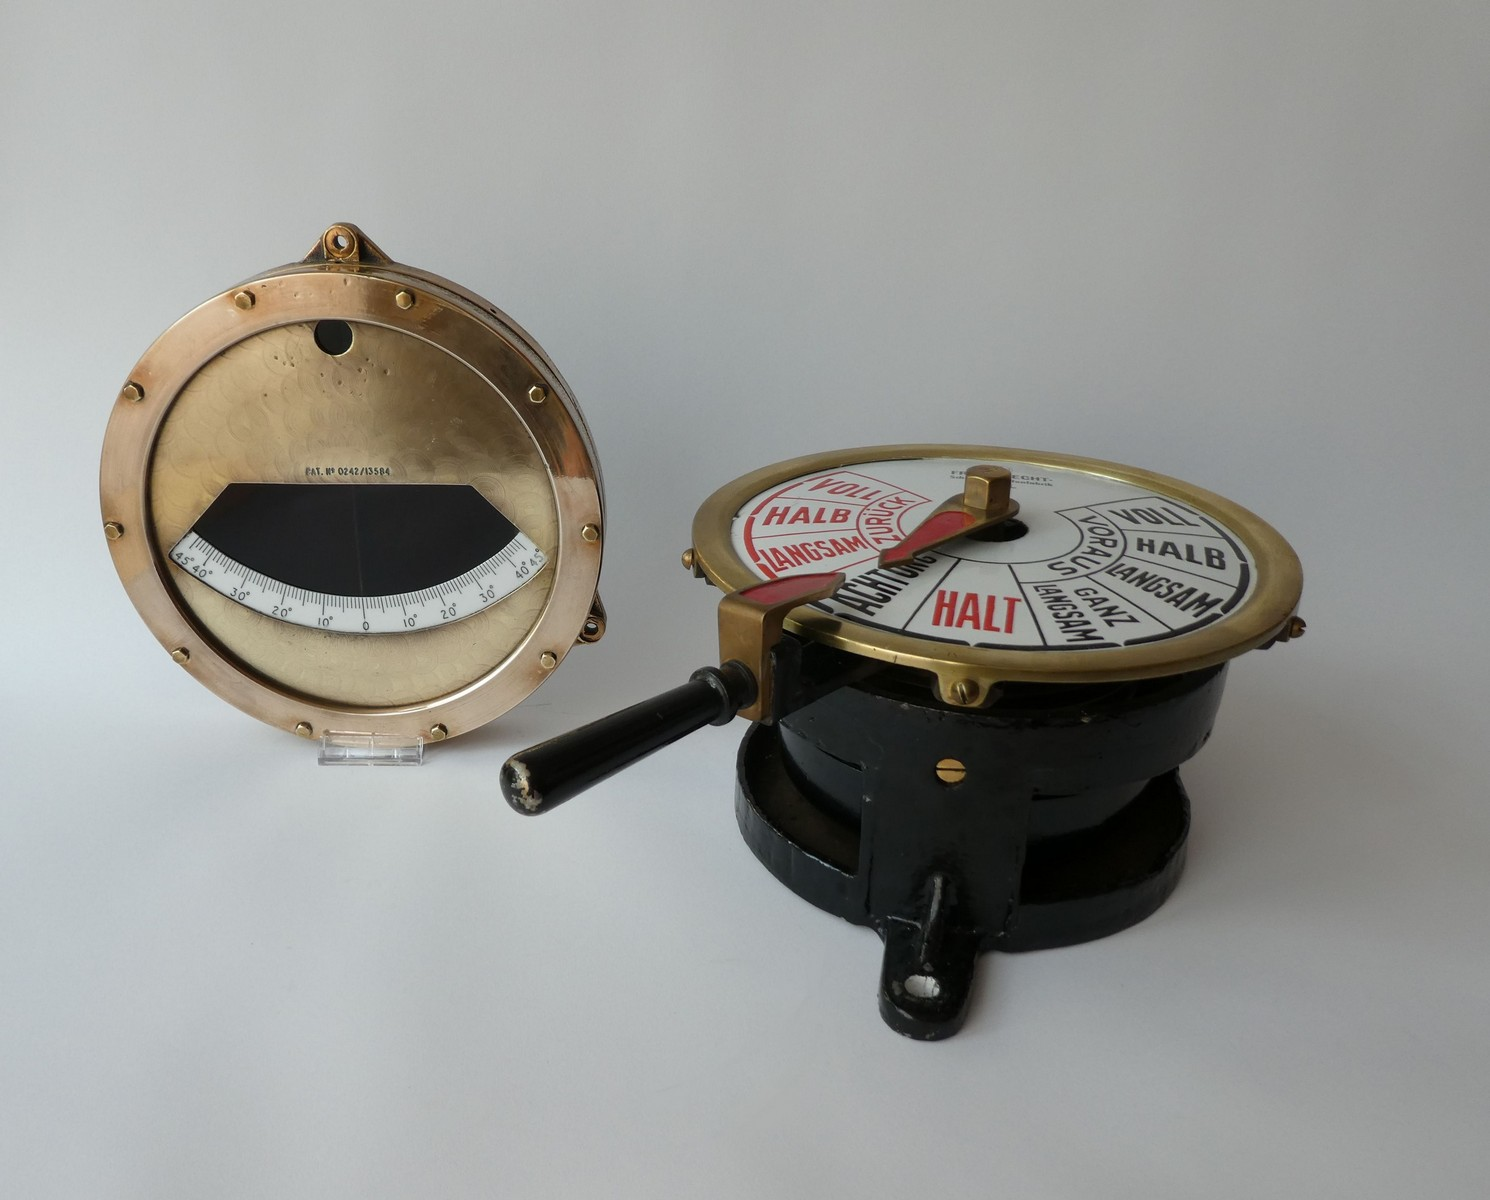 KRIEGSMARINE MACHINE ROOM TELEGRAPH & CLINOMETER